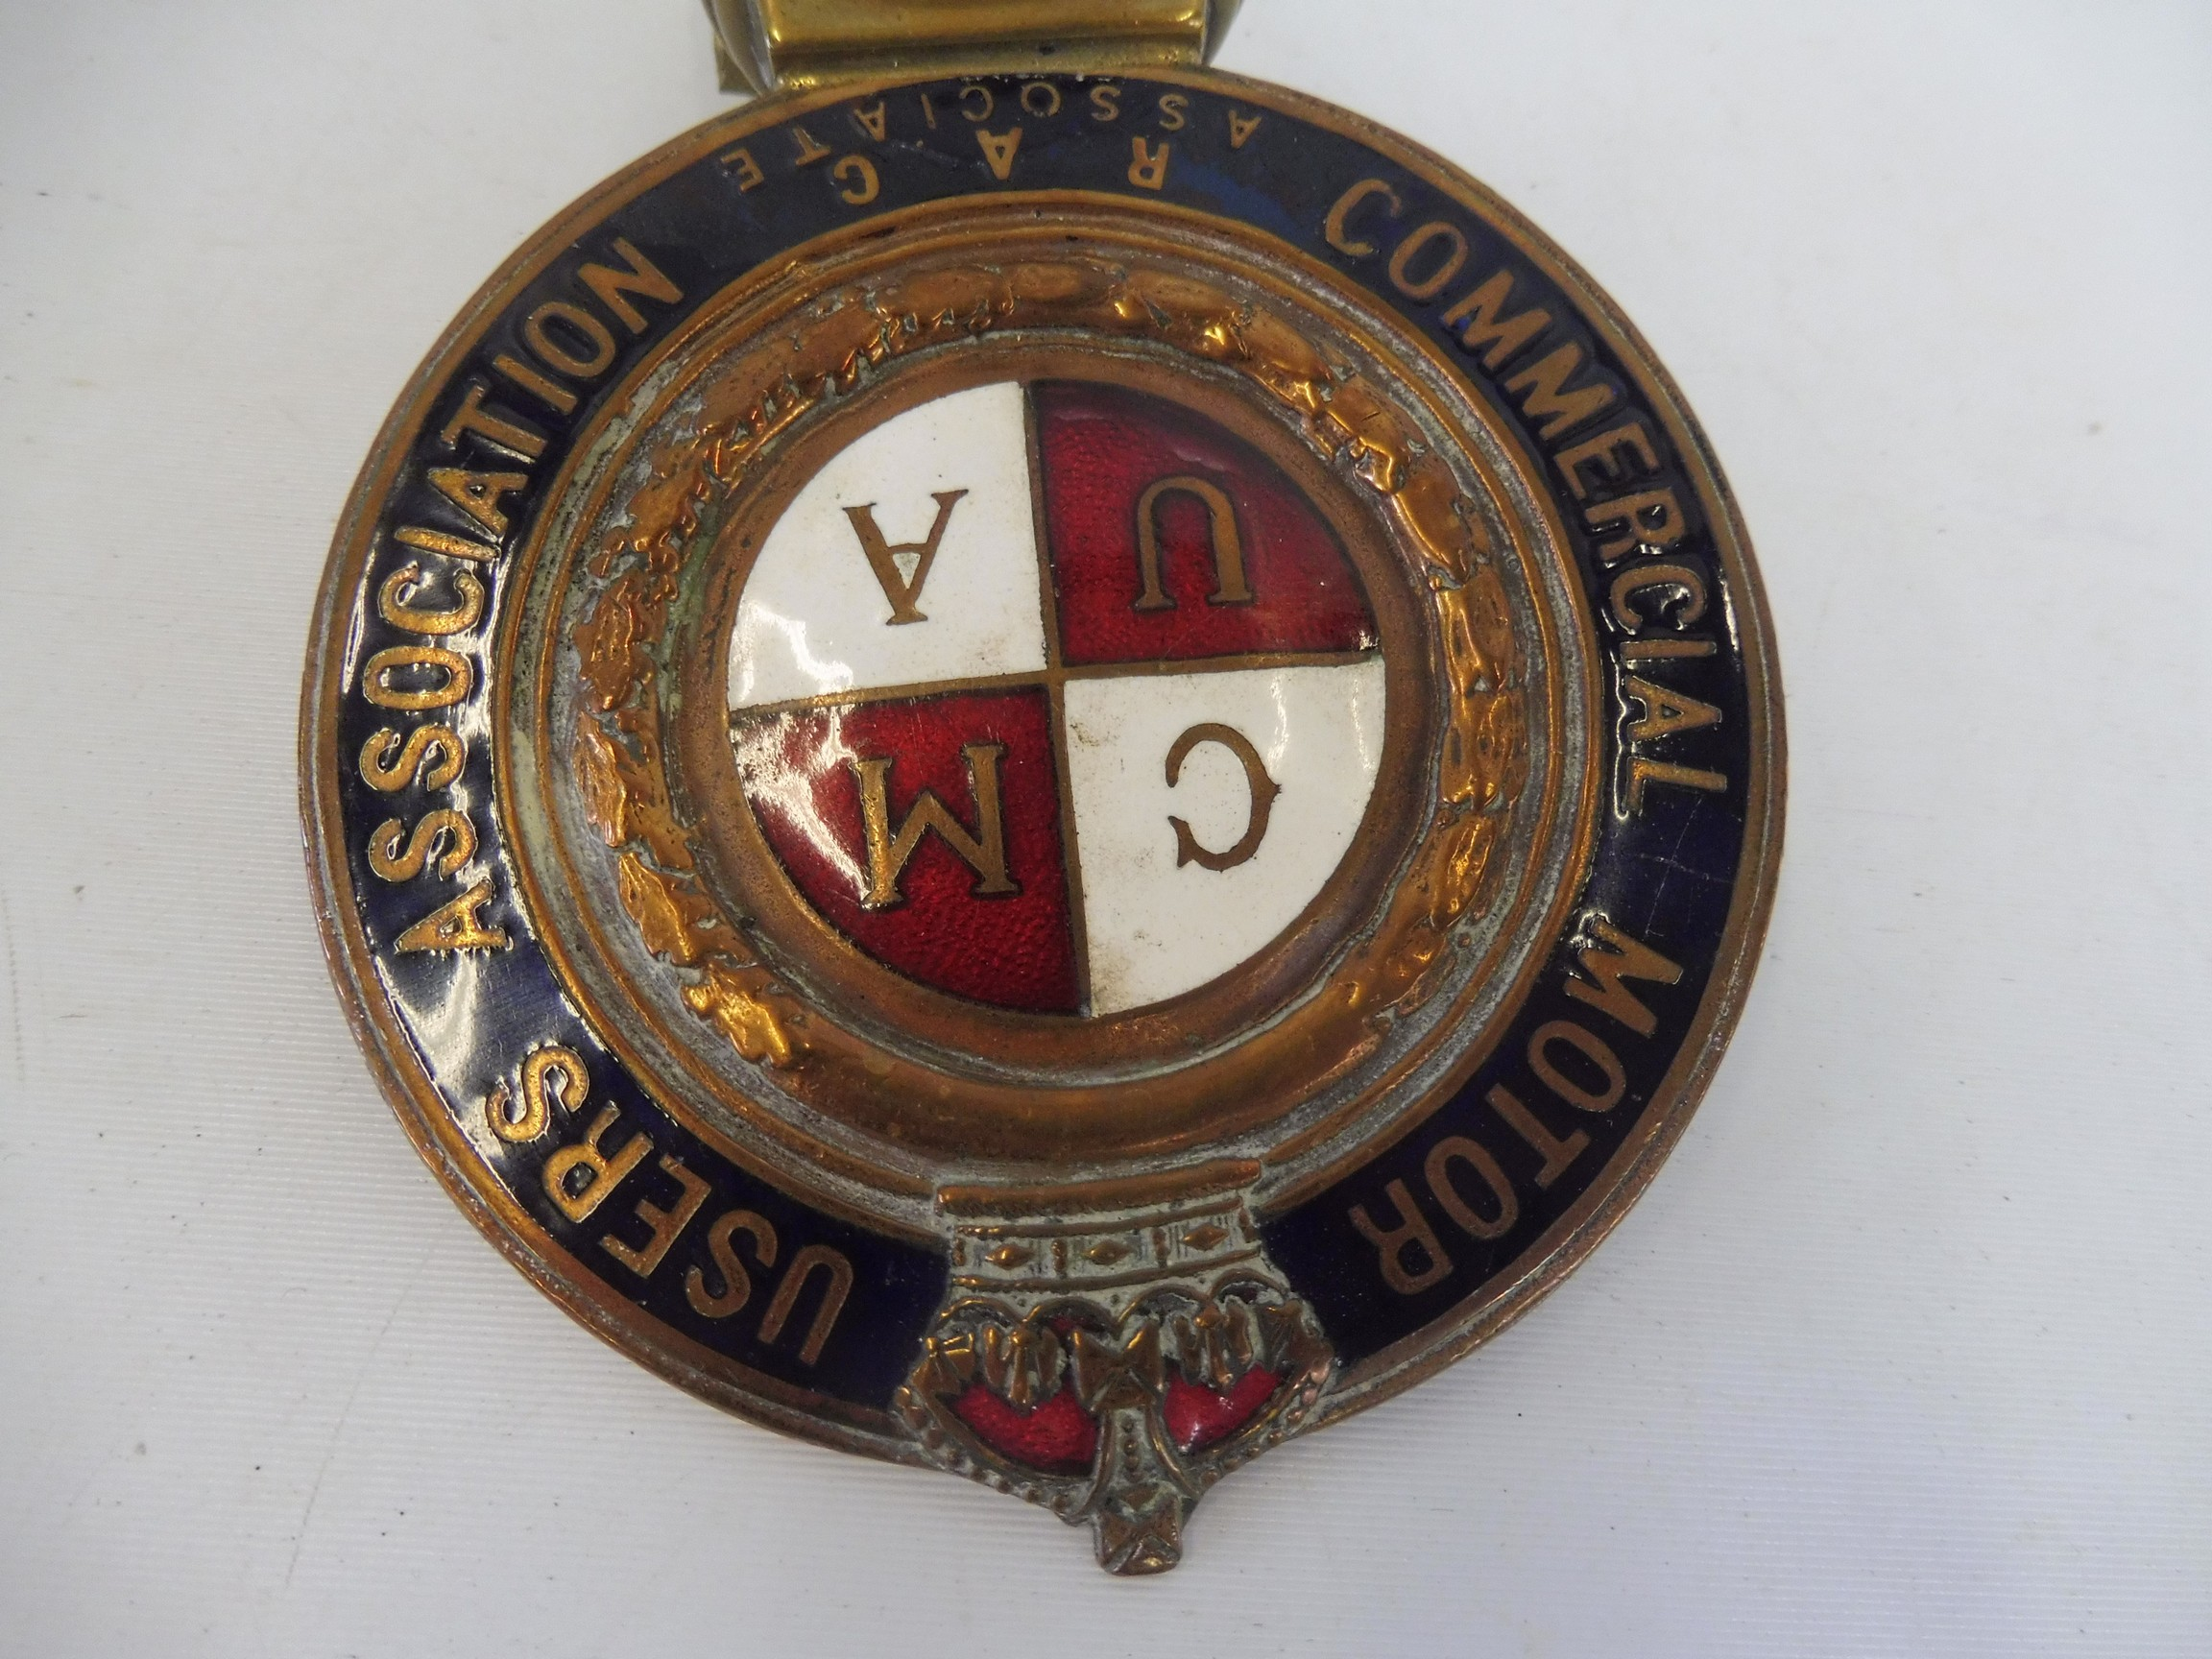 A Commercial Motor Users Association R.A.C. Associate enamelled badge, no 40127, some repair to - Image 3 of 4